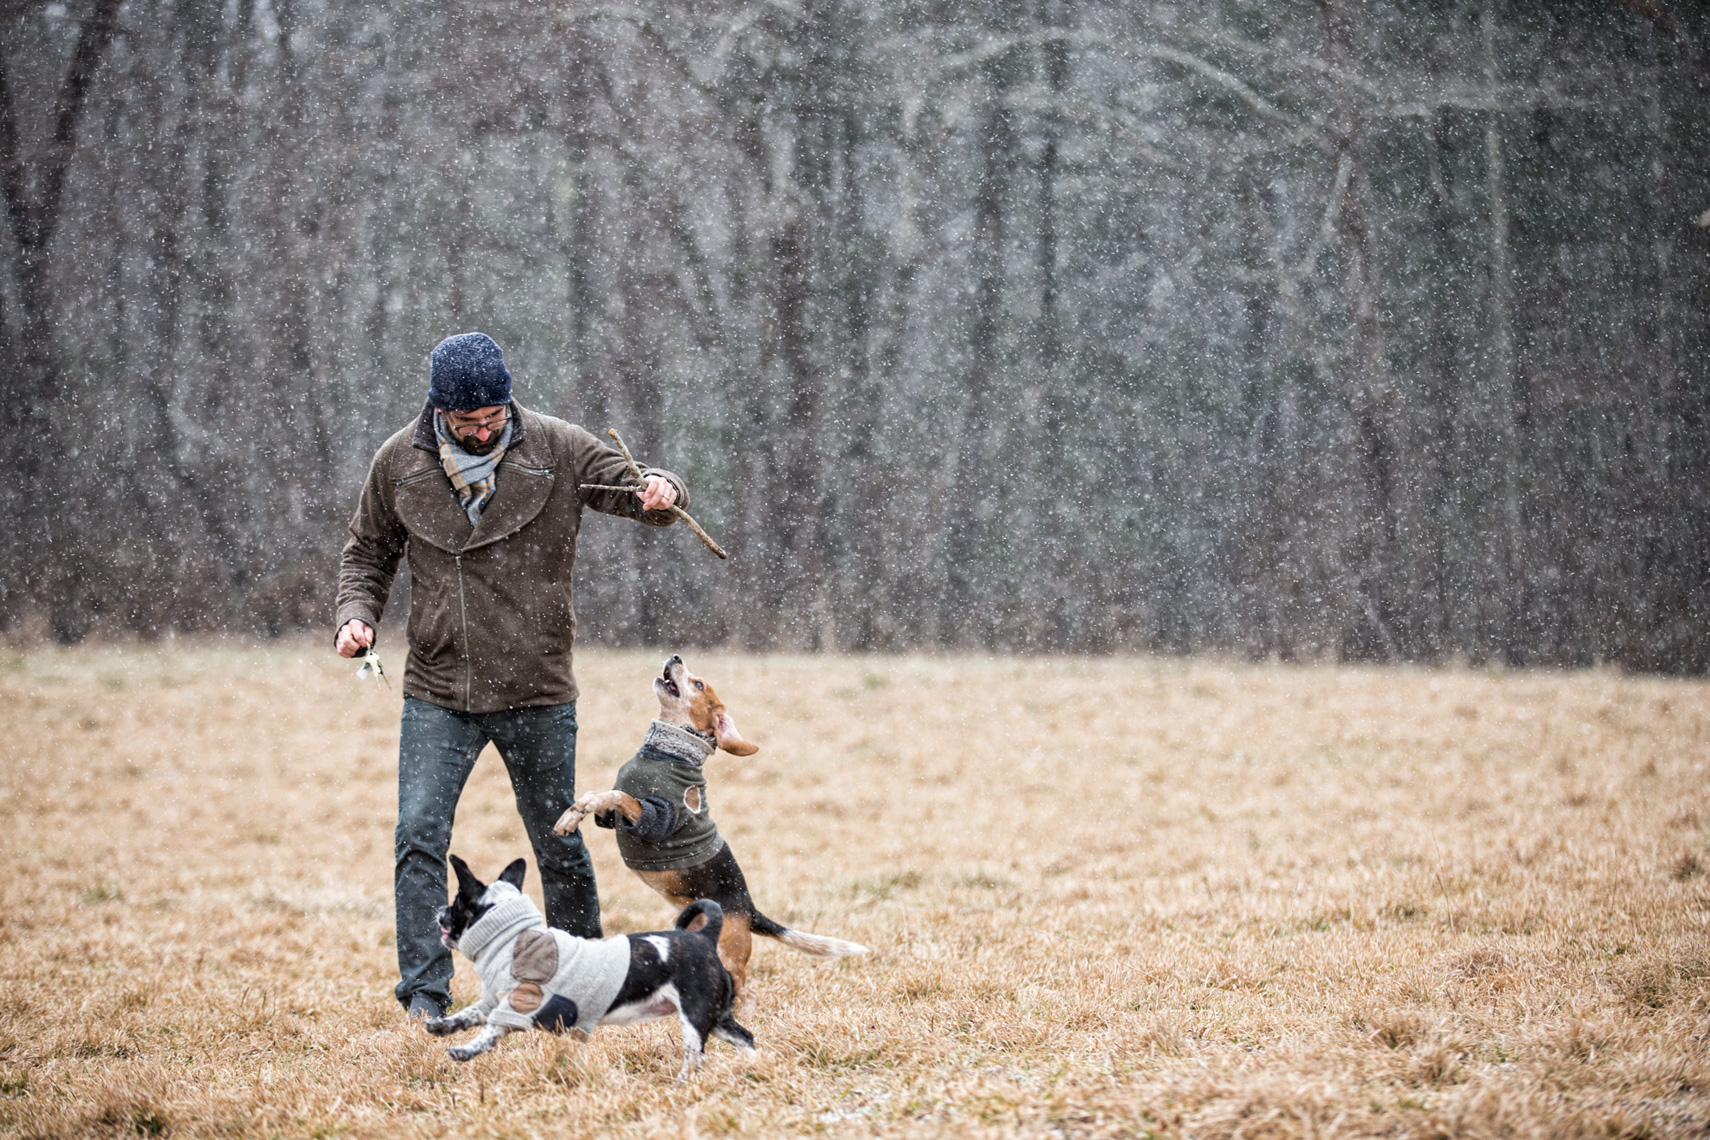 Los Angeles Dog Photography, Michael Brian, Purina ONE, Man playing in field with dogs, Zeus Jones, 28 Day Challenge, Asheville, North Carolina